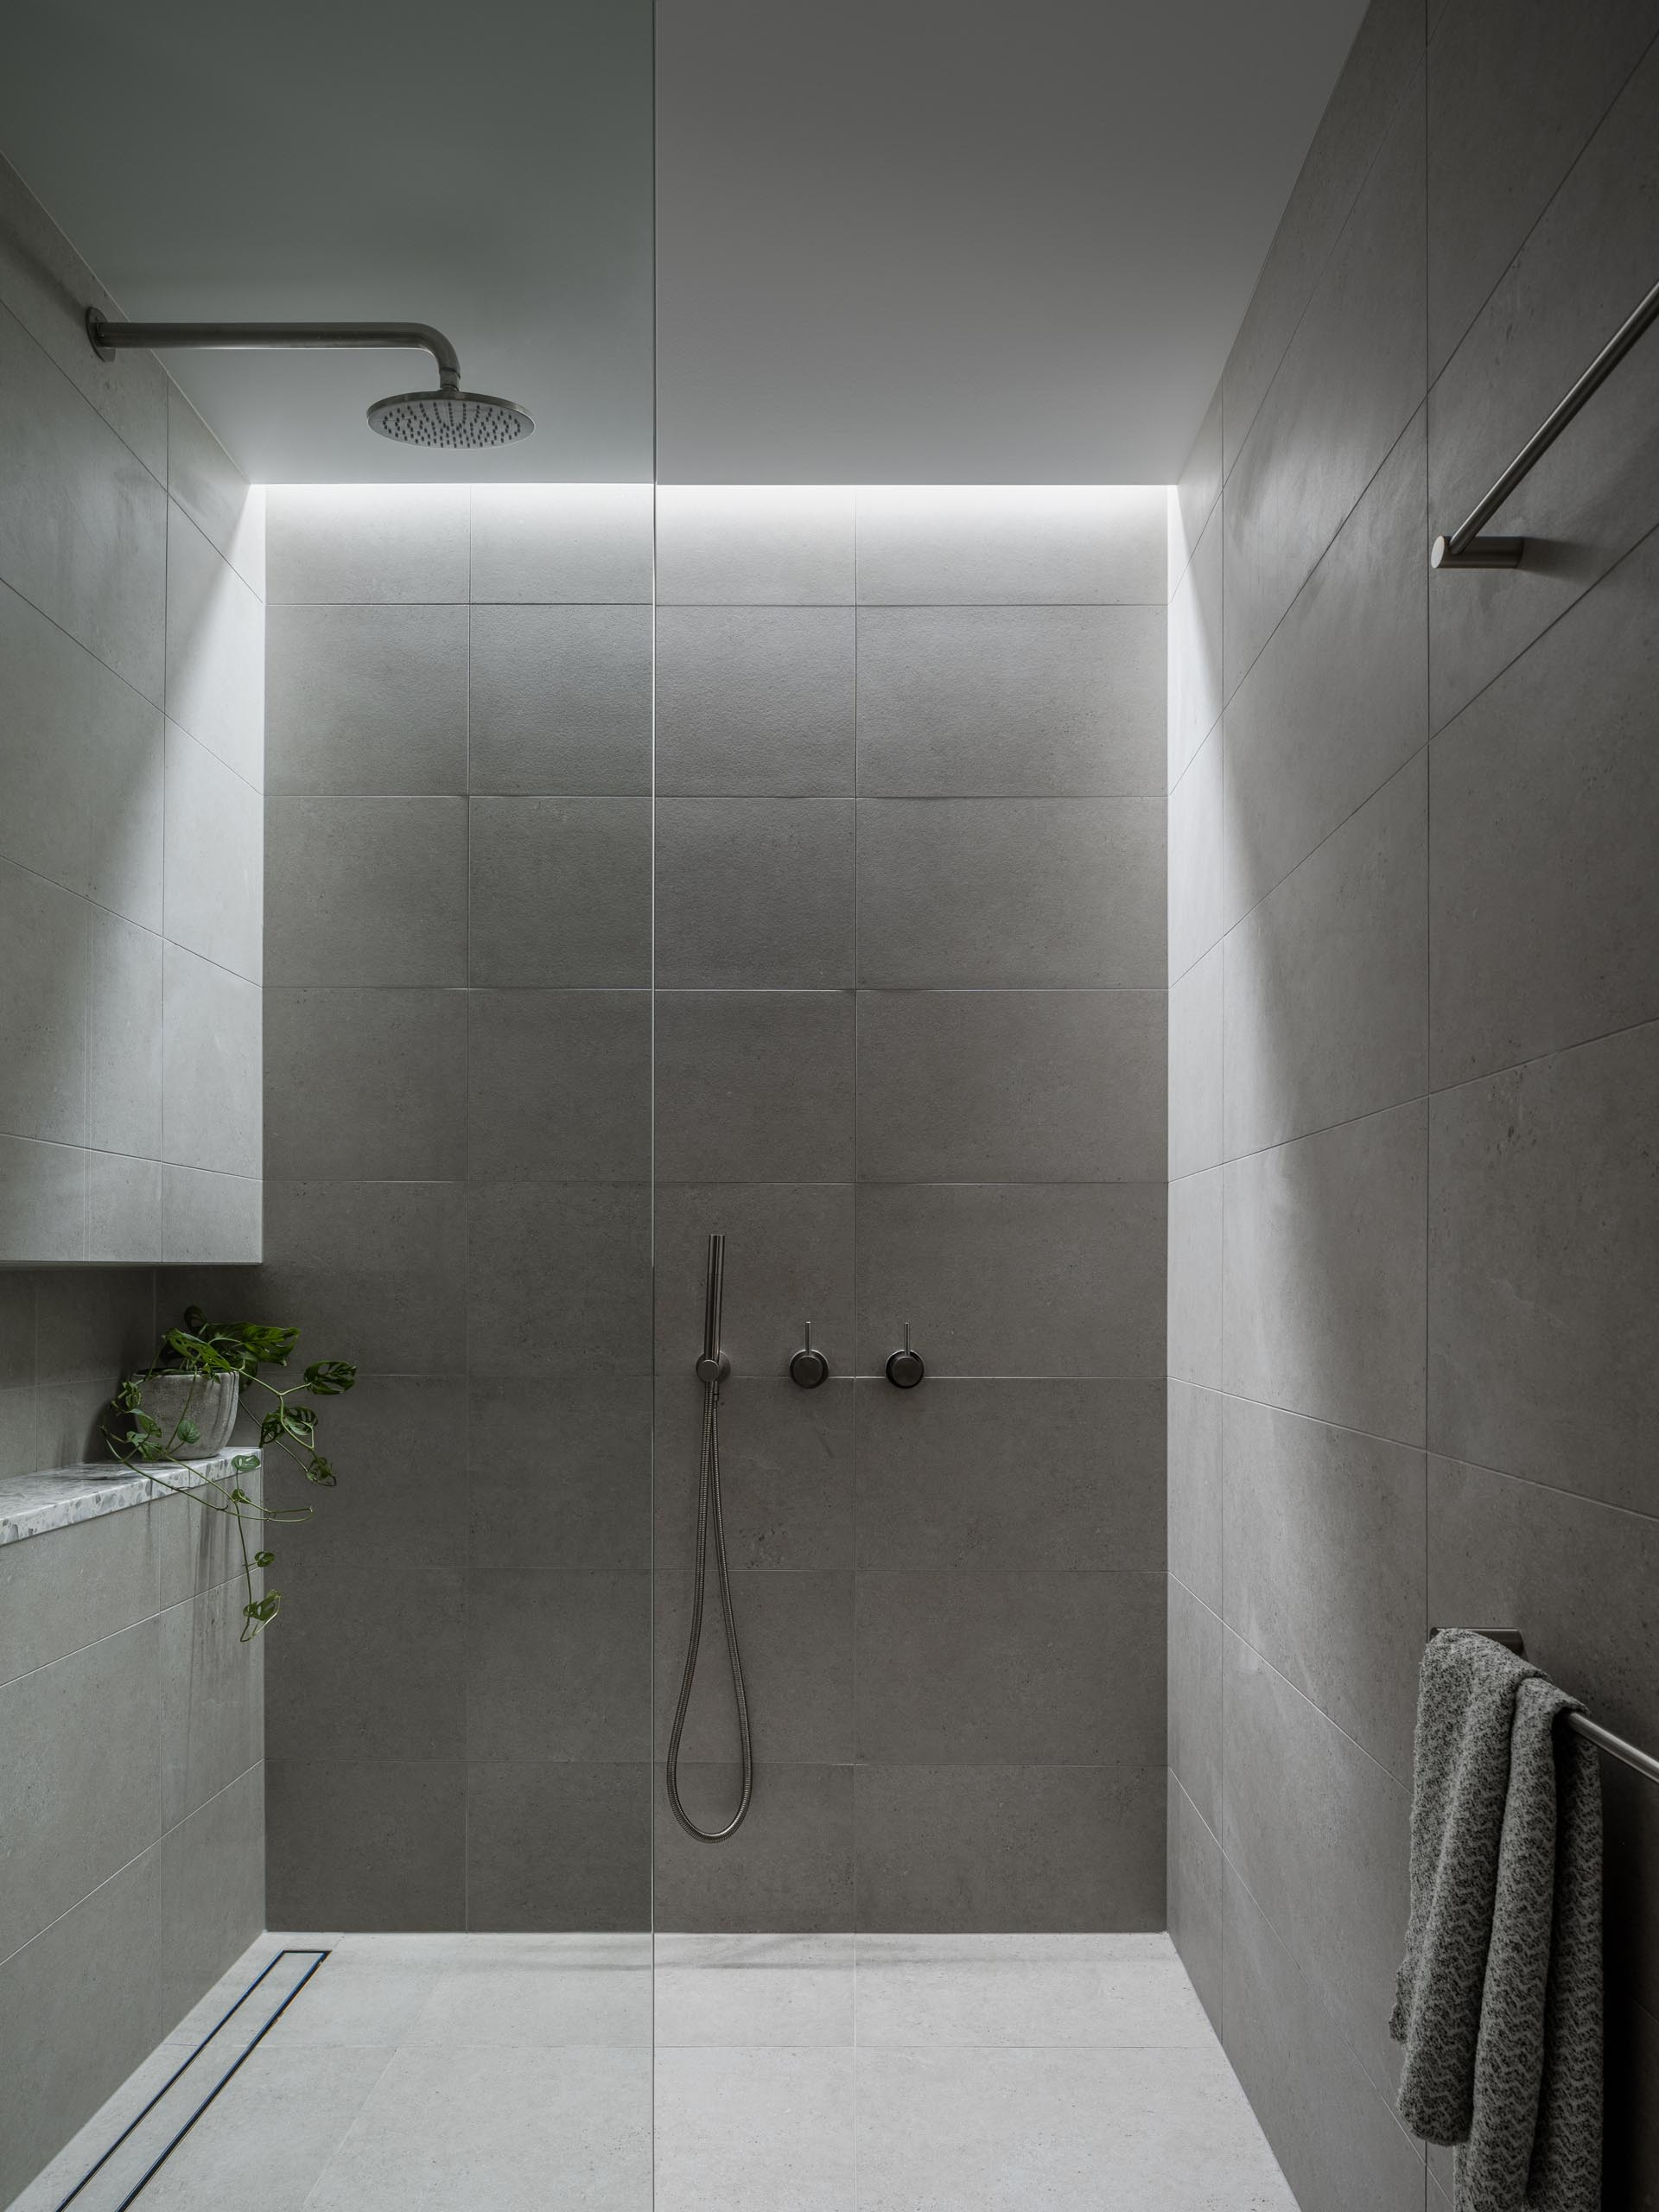 A gray tiled shower with a skylight, shower niche, and a linear drain.